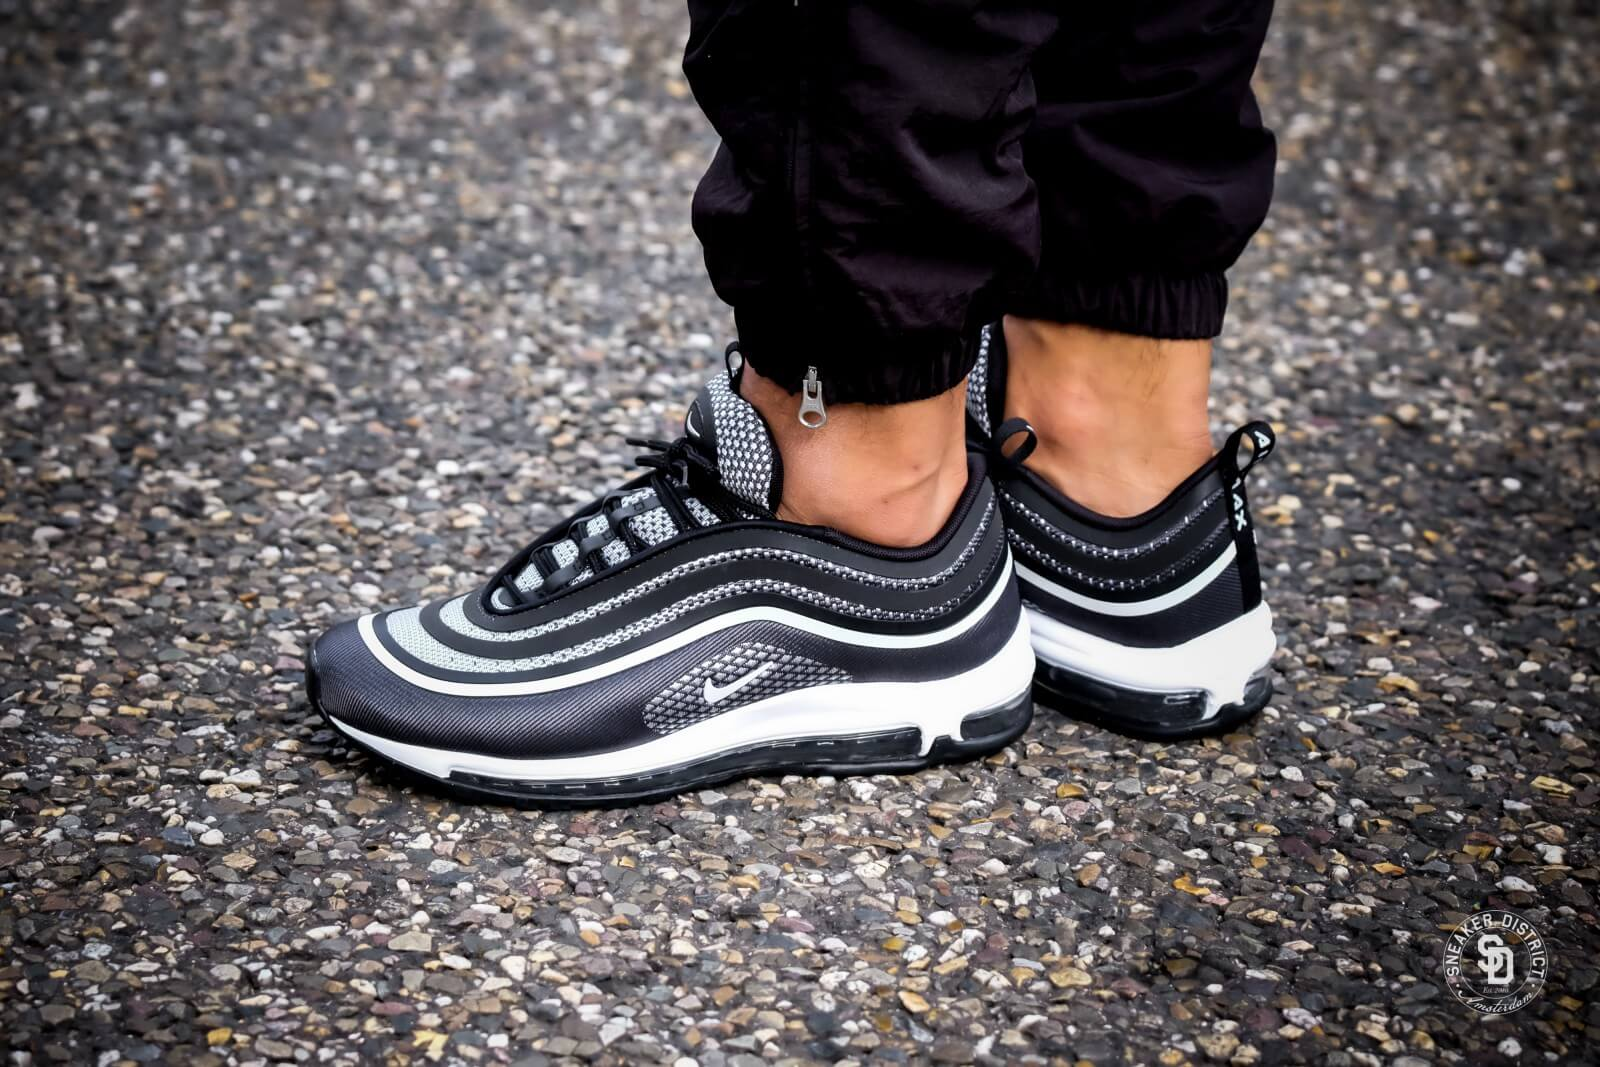 Nike Air Max 97 UL '17 Black / Pure Platinum Anthracite / White - 918356-001